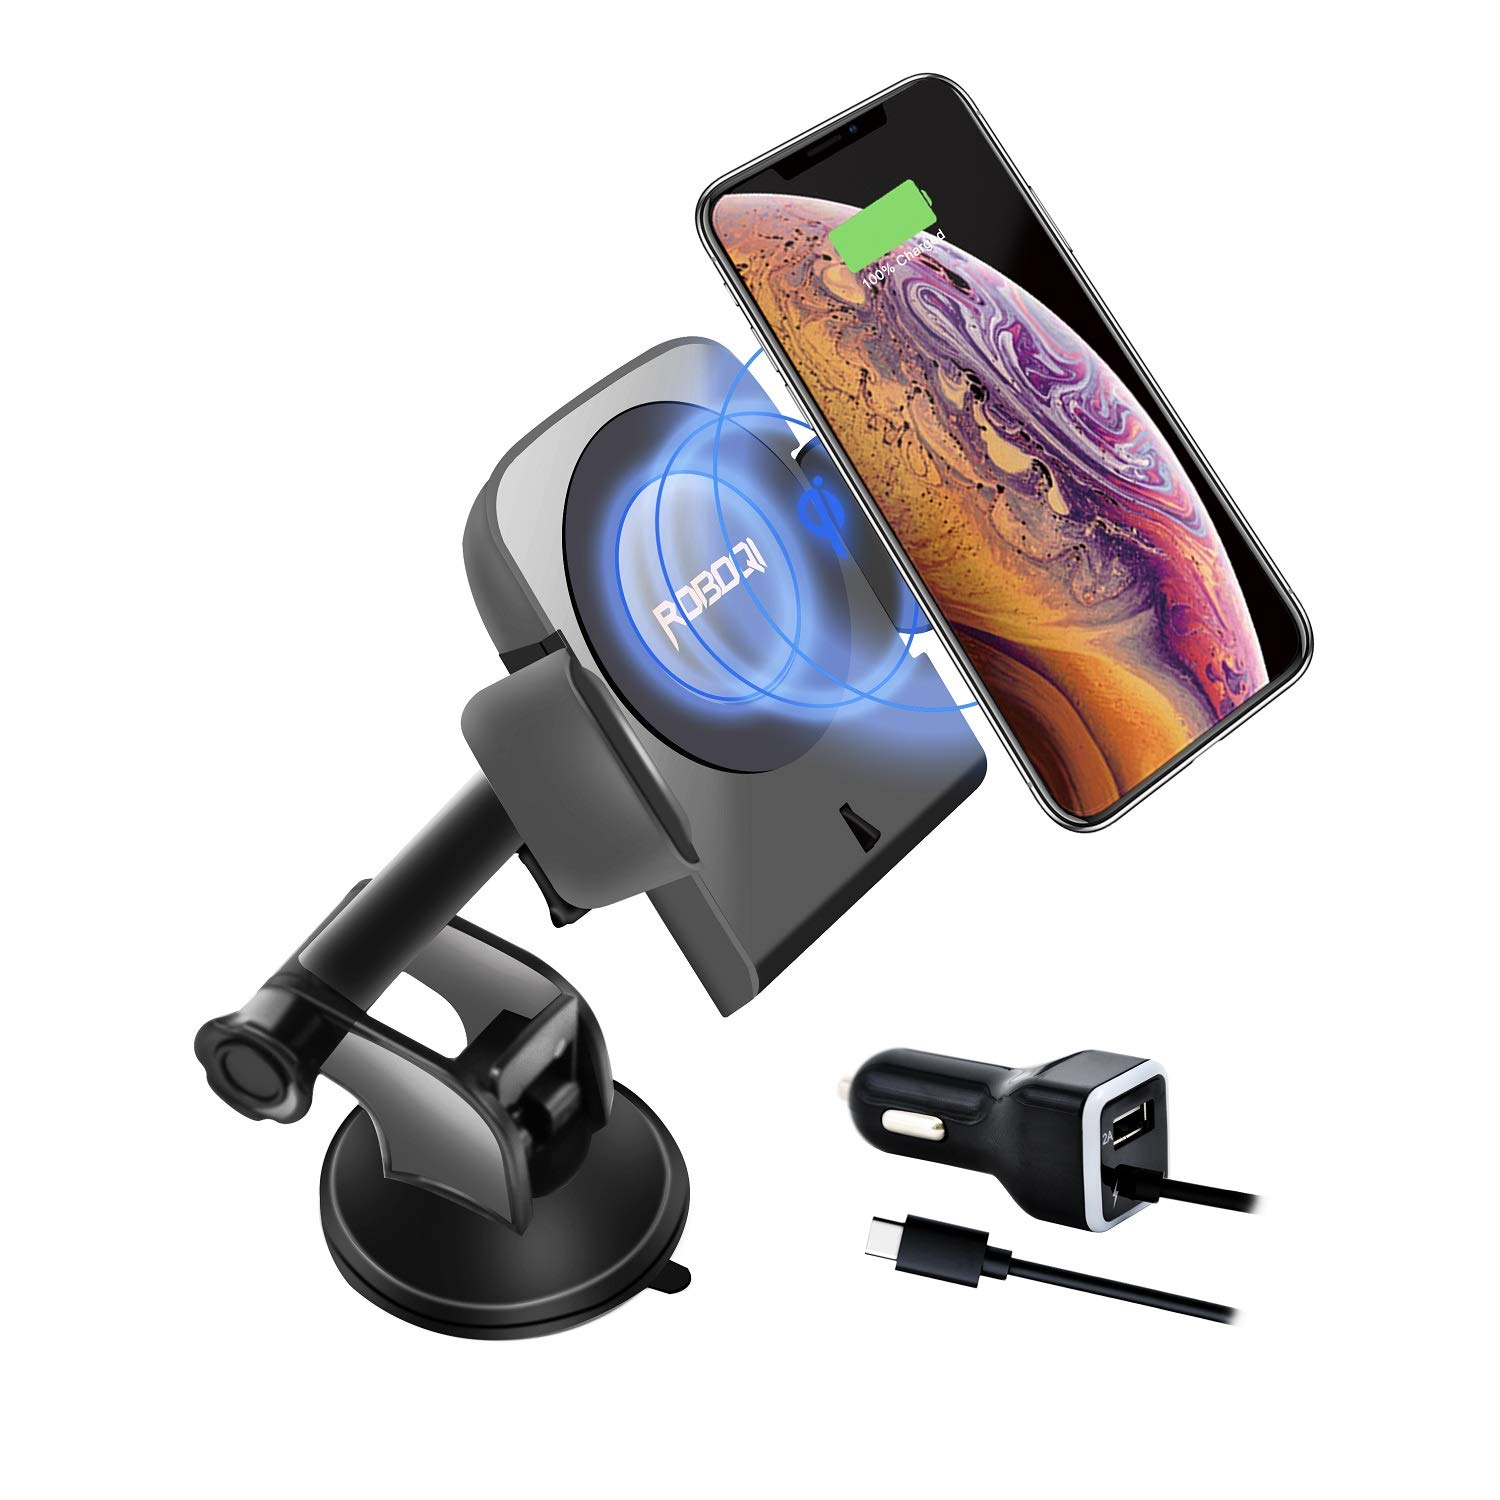 ROBOQI Automatic Wireless Car Charger, Qi-Certified Robotic Car Mount, Air Vent Phone Holder with Contact Sensor, Compatible with iPhone Xs/XS MAX/XR/X/8/8 + & Samsung Galaxy Note 9/S9/S8. by Invisible tech